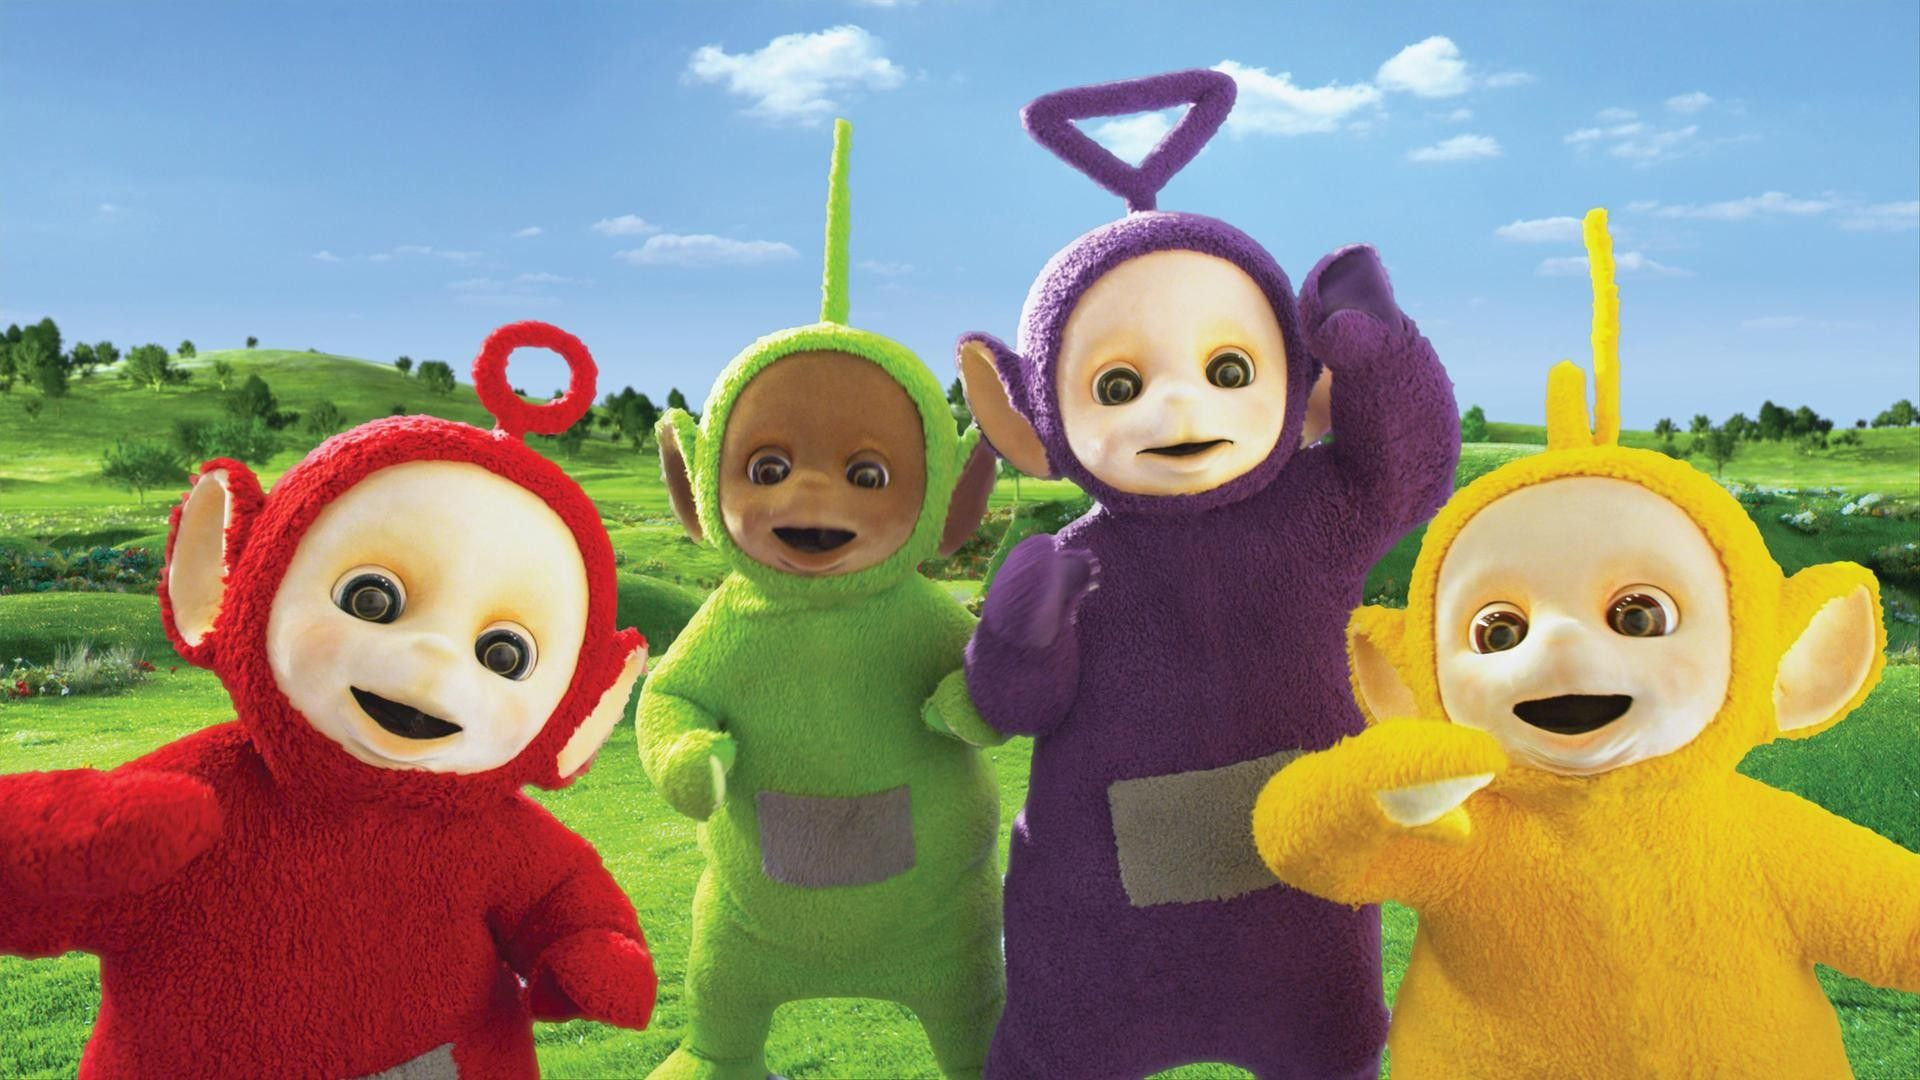 Teletubbies Wallpaper Hd 70 Images In 2020 Teletubbies Cute Wallpapers Wallpaper